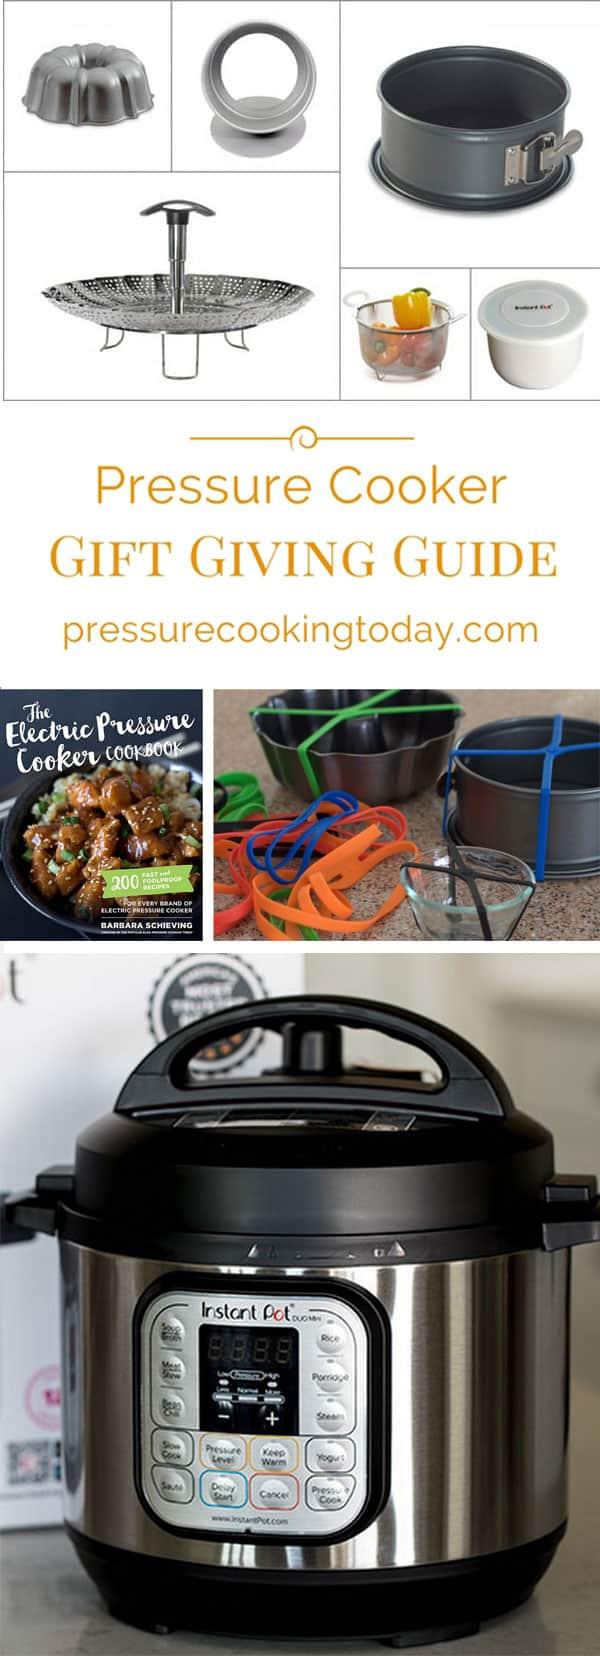 If you\'re looking for ideas to put on your wishlist, or for the pressure cooker lover in your life, check out my Electric Pressure Cooker Gift Giving Guide.